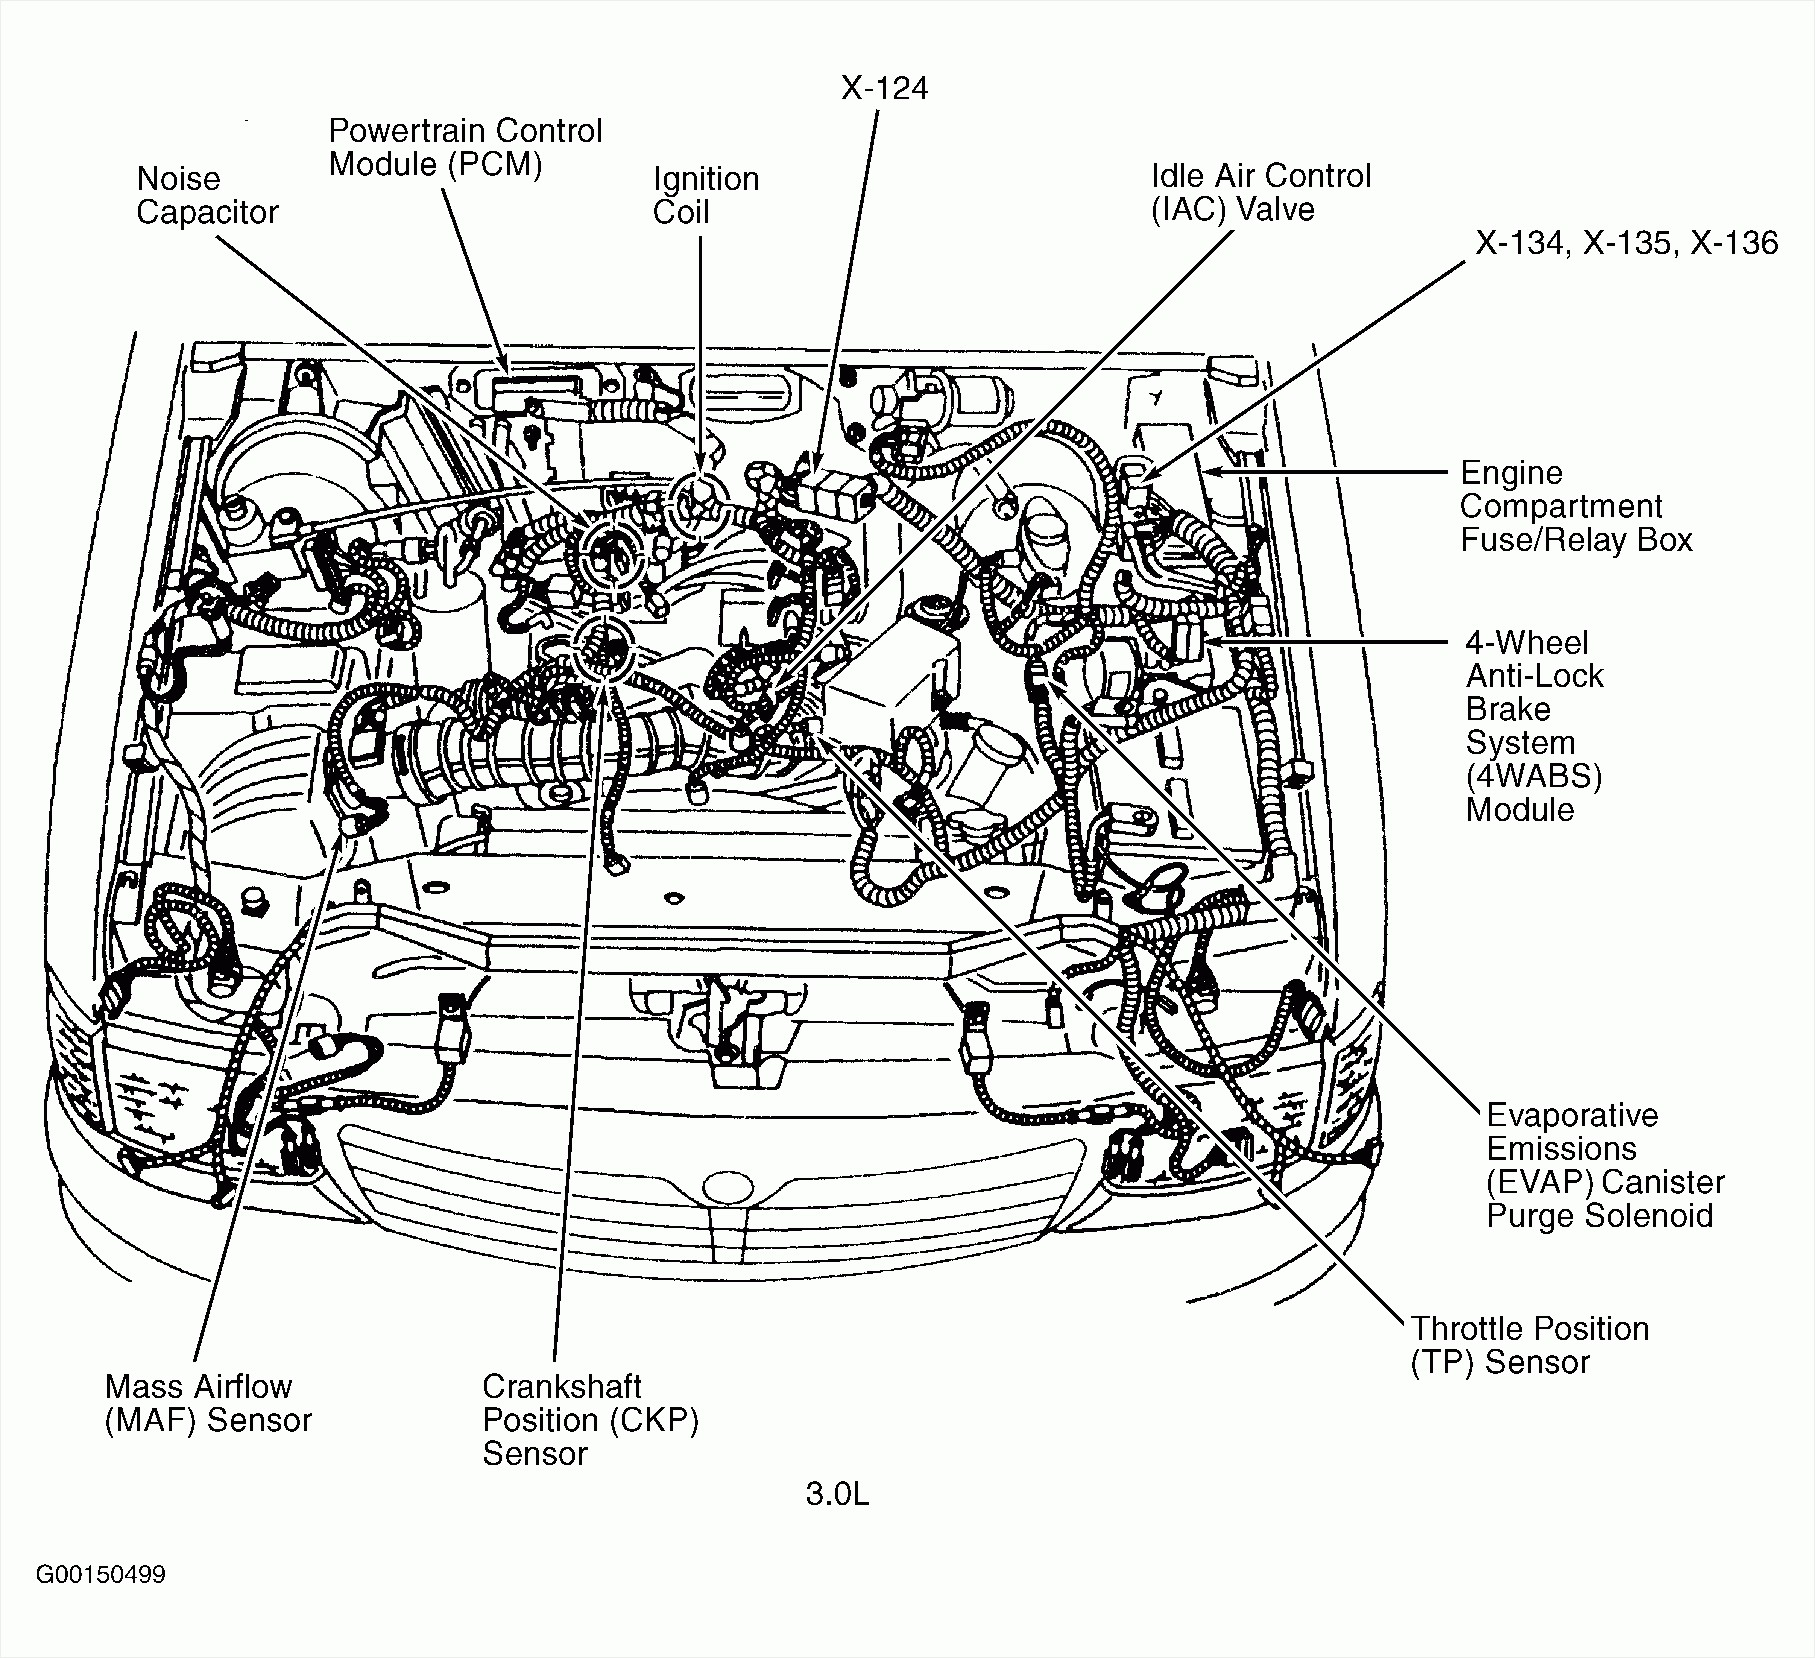 Bmw 325i Engine Diagram - Home Tips Home Electrical Wiring M Engine Diagram on m44 engine diagram, h1 engine diagram, g20 engine diagram, m20 engine diagram, m96 engine diagram, fx45 engine diagram, m54 engine diagram, m104 engine diagram, m52 engine diagram, m10 engine diagram, m50 engine diagram, m45 engine diagram, m62 engine diagram, m60 engine diagram, m42 engine diagram,